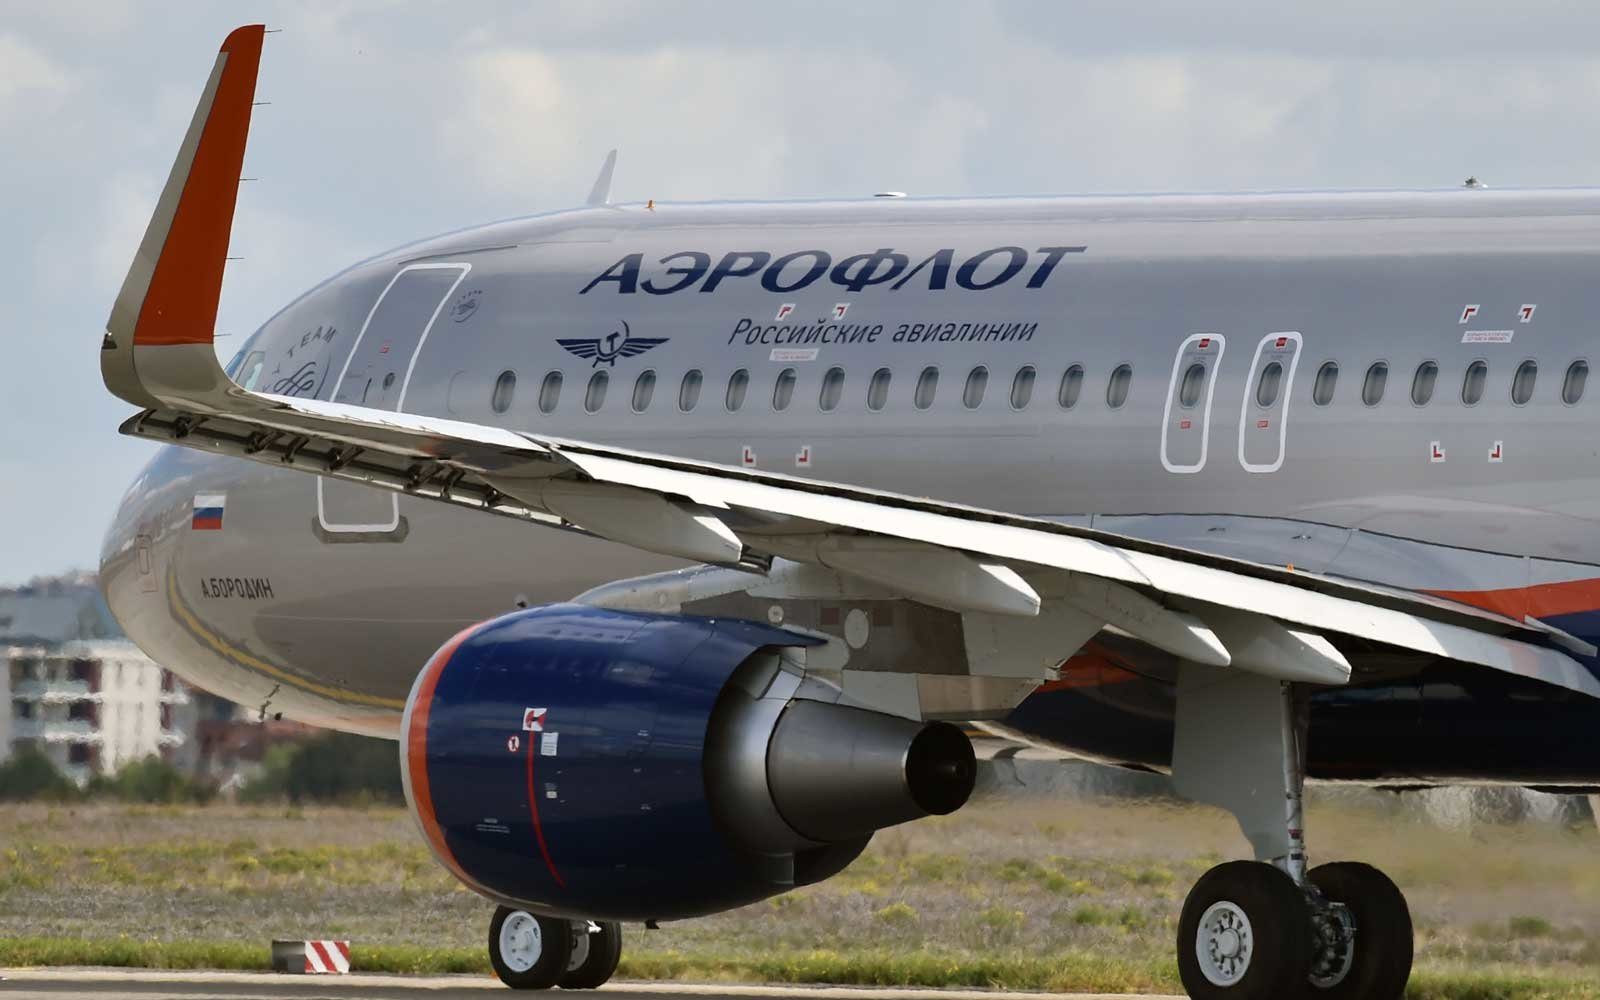 An Airbus A320 belonging to the Russian company Aeroflot